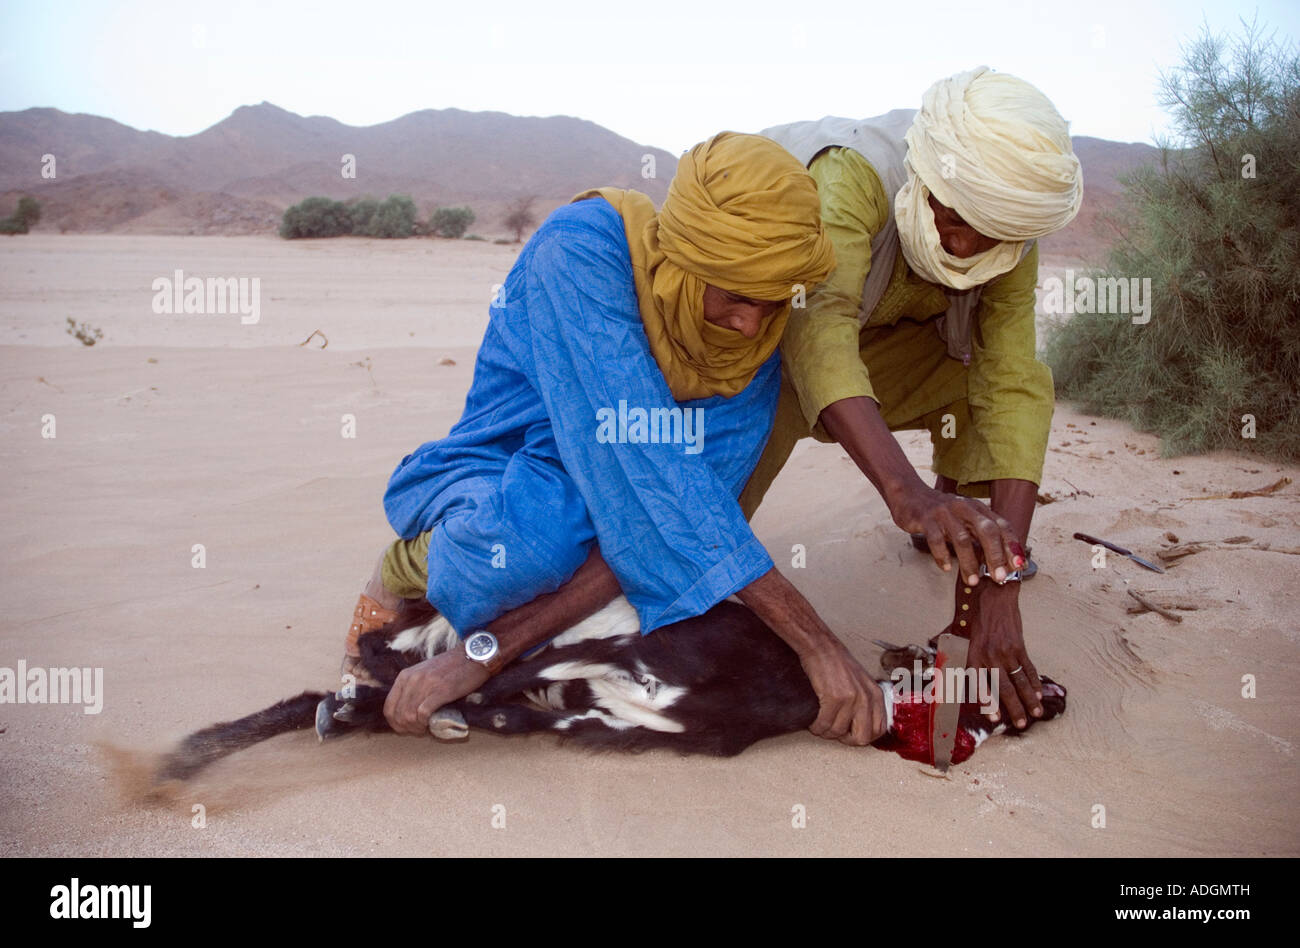 Tuareg men slaughter a goat in the Halal way - according to Koran law - near their camp in a remote wadi in the - Stock Image